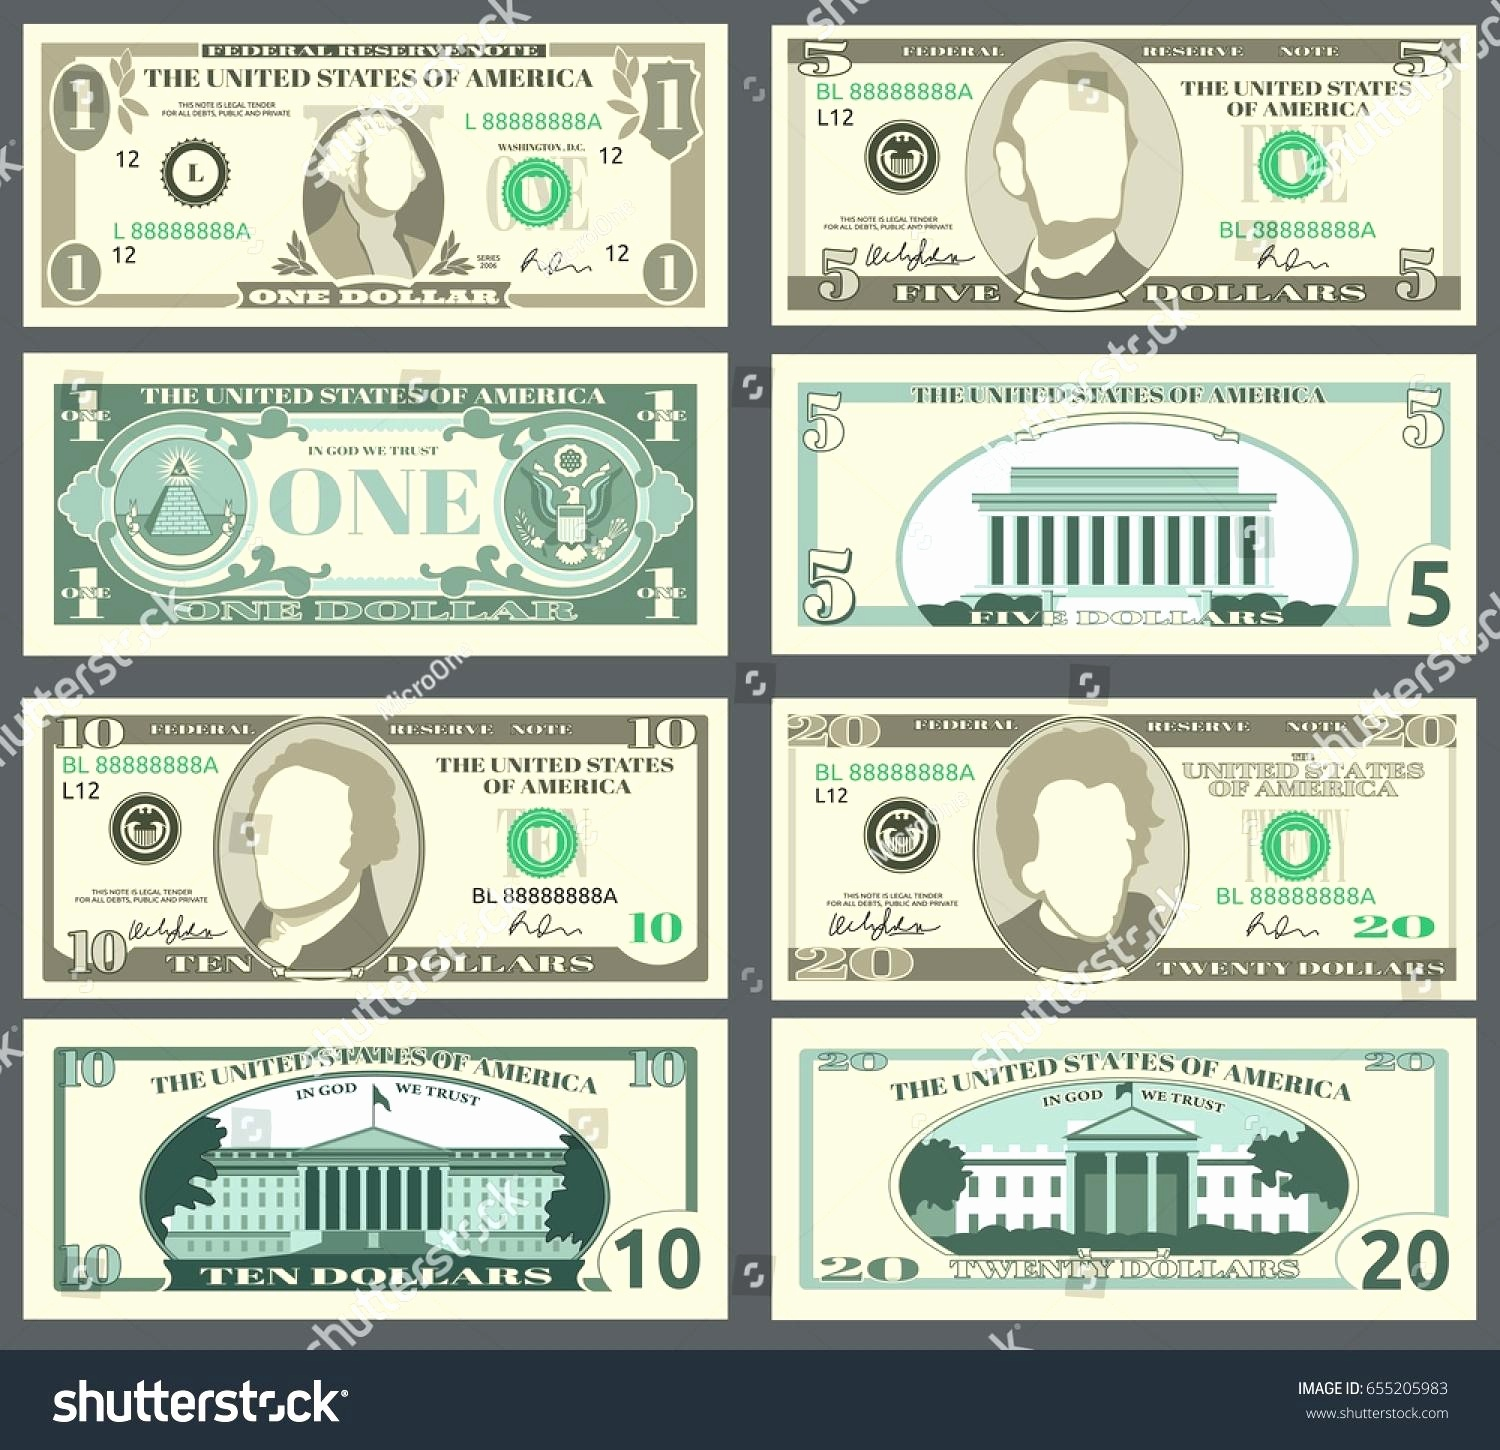 Printable Fake Money Templates Luxury Fake Money Template - Free Printable Money